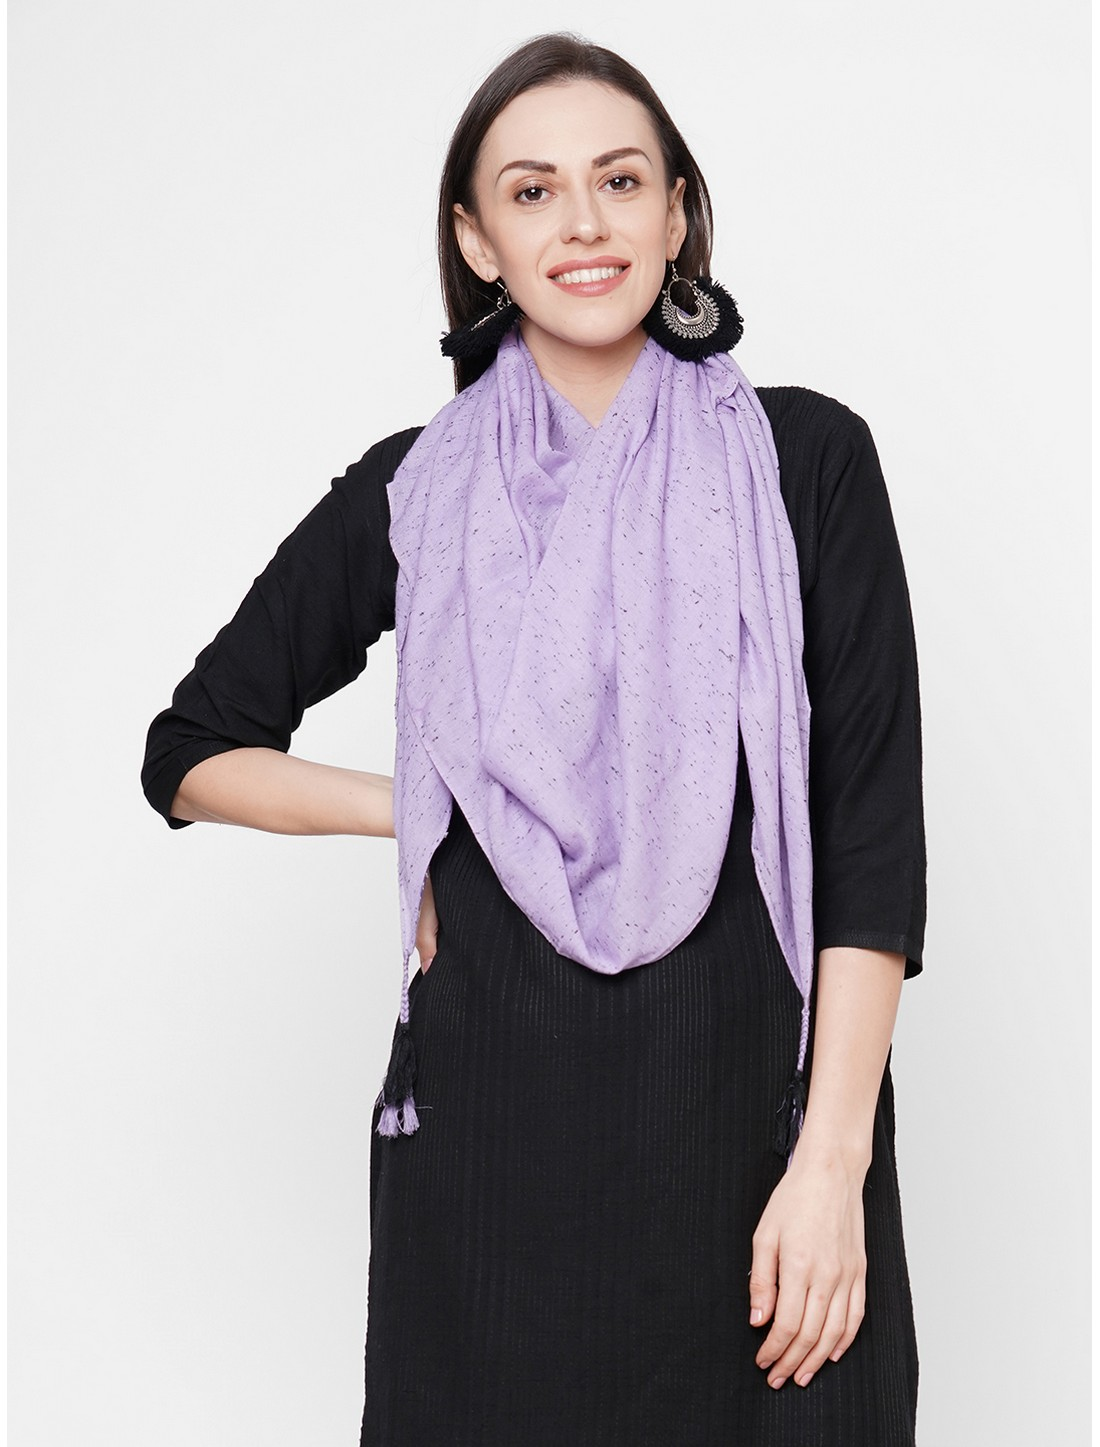 Get Wrapped   Get Wrapped Purple Viscose Rayon Self Design Scarf with Tasselled Border